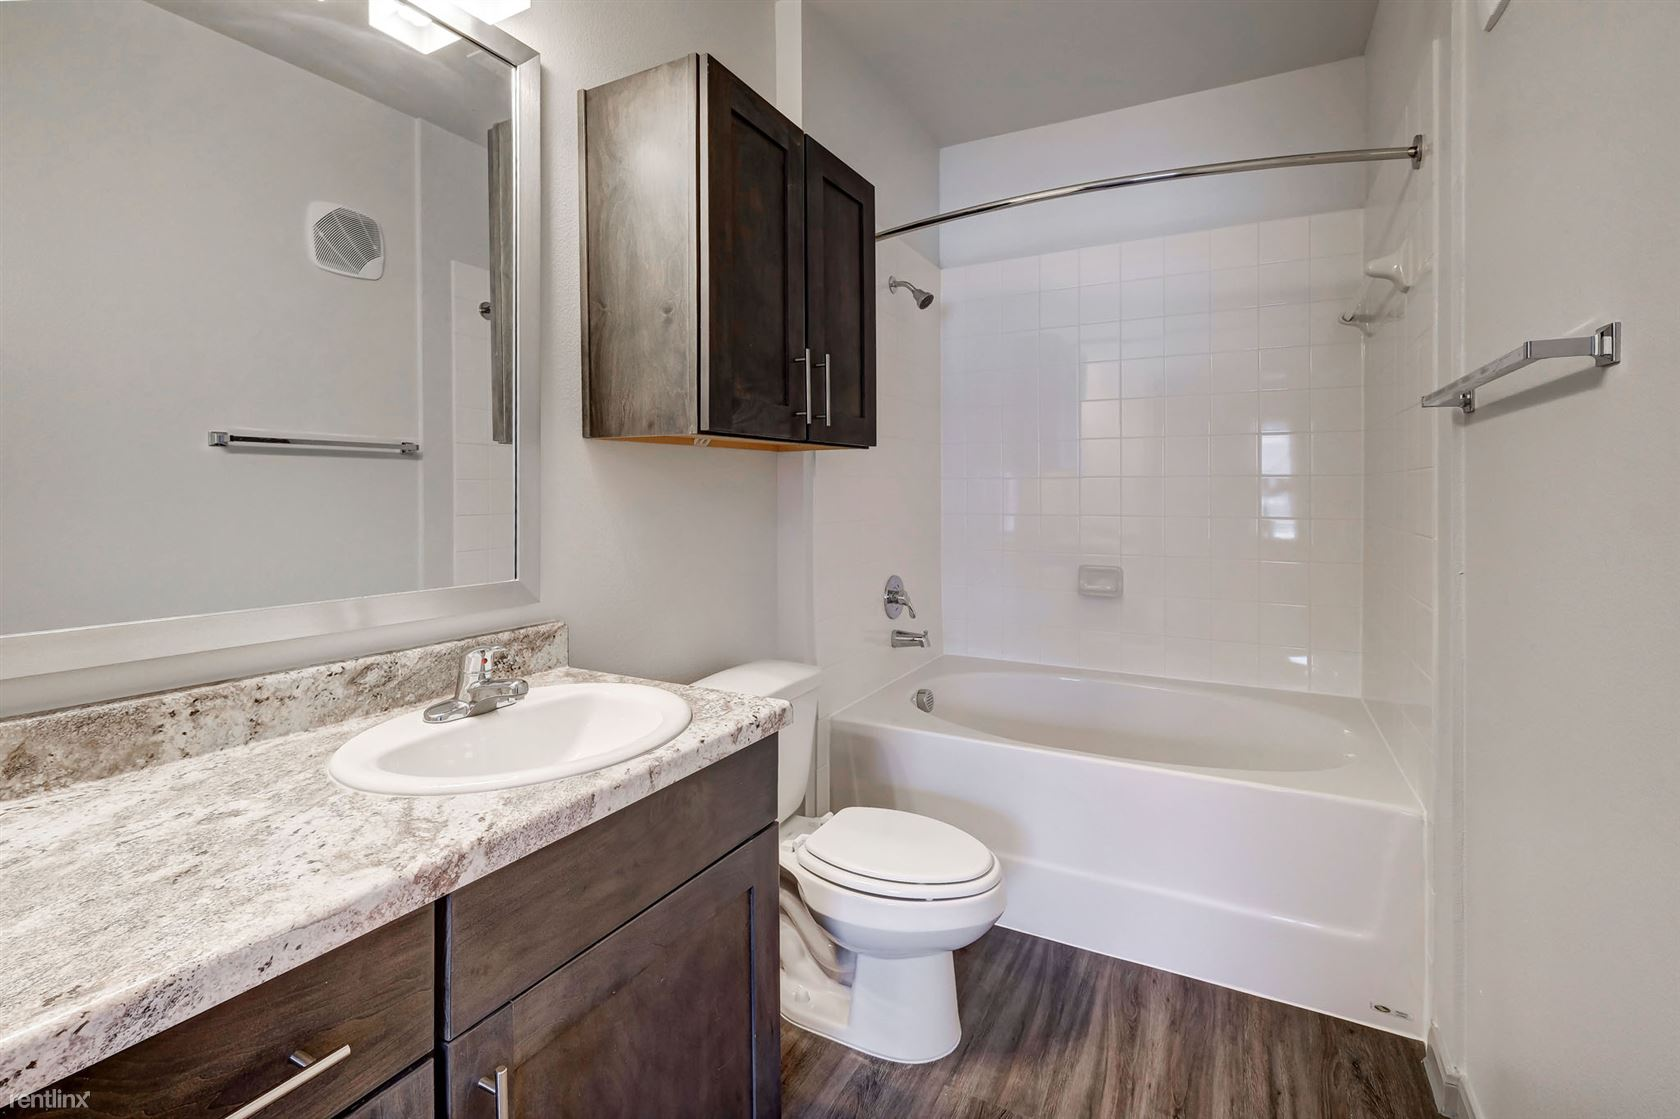 824 E US Highway 80, Forney, TX - $980